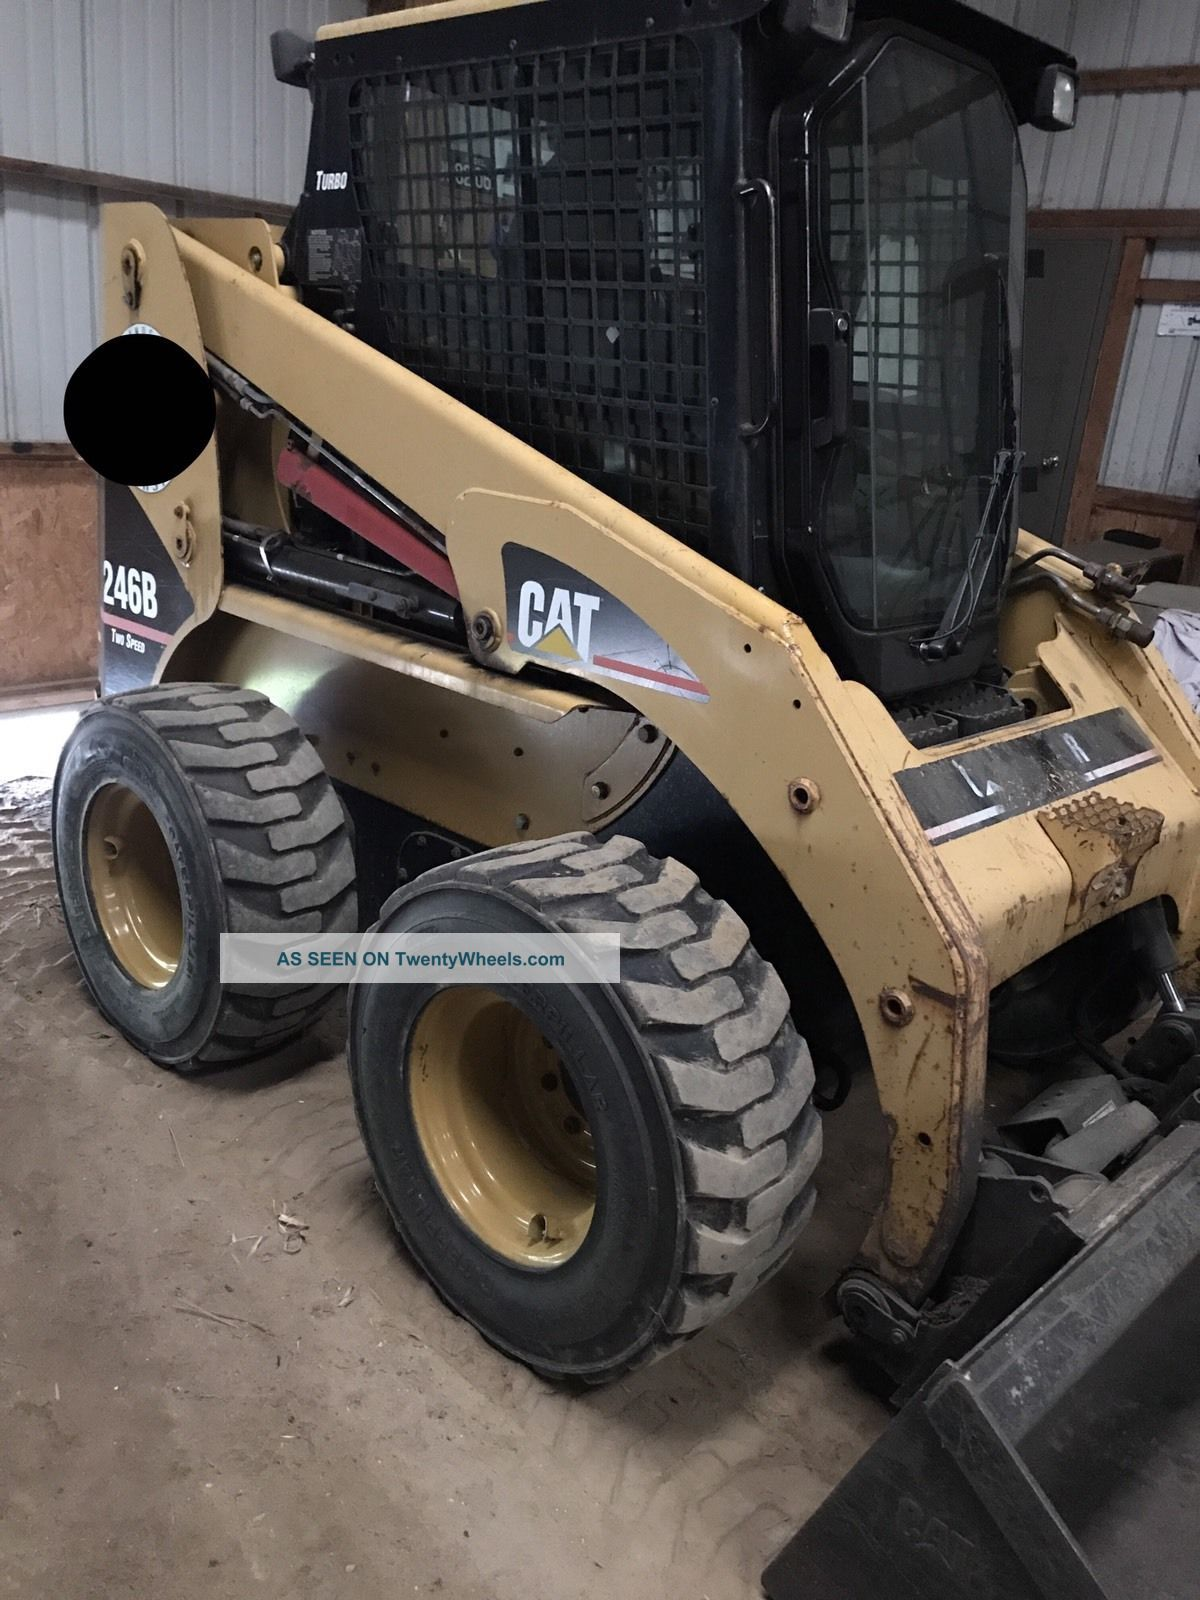 Caterpillar 246b Skid Steer.  Enclosed Cab Door W/ Heat.  Pilot Controls,  Exc Cond Skid Steer Loaders photo